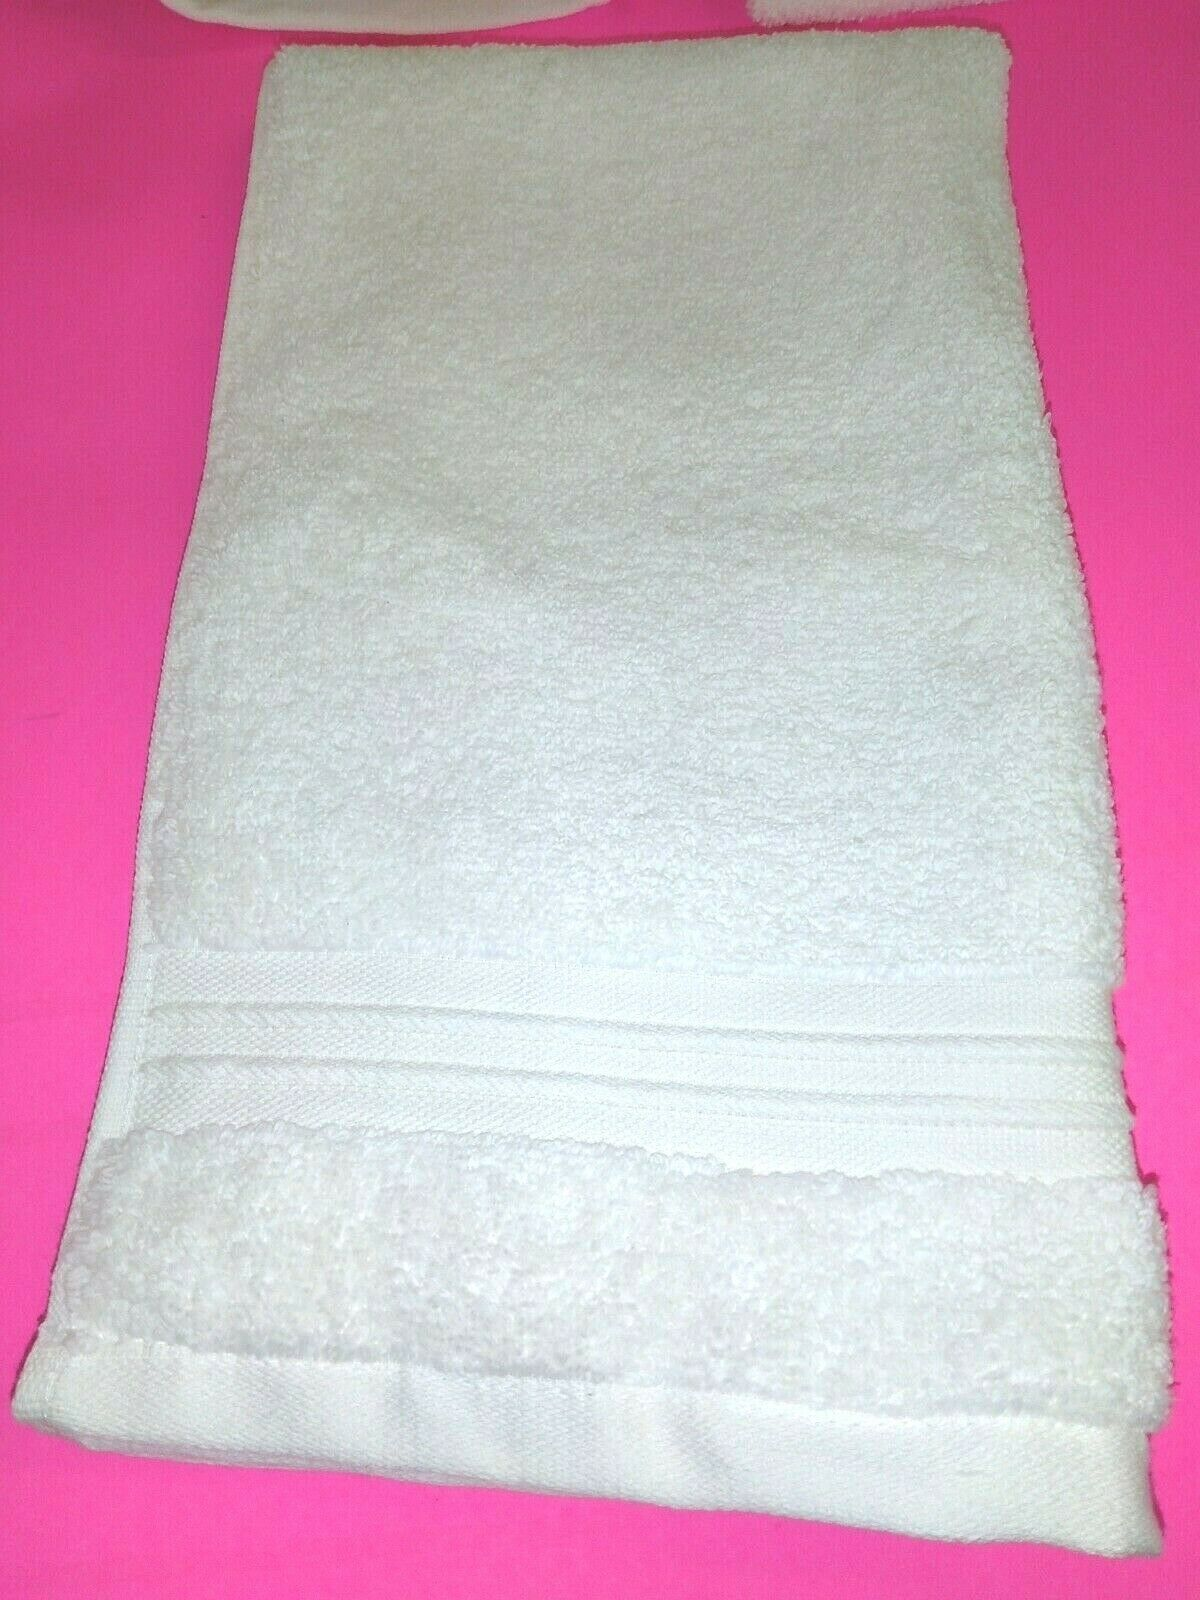 FIELDCREST  100% Cotton  HAND TOWEL 16''X30''  - CREAM- NEW WITH TAGS